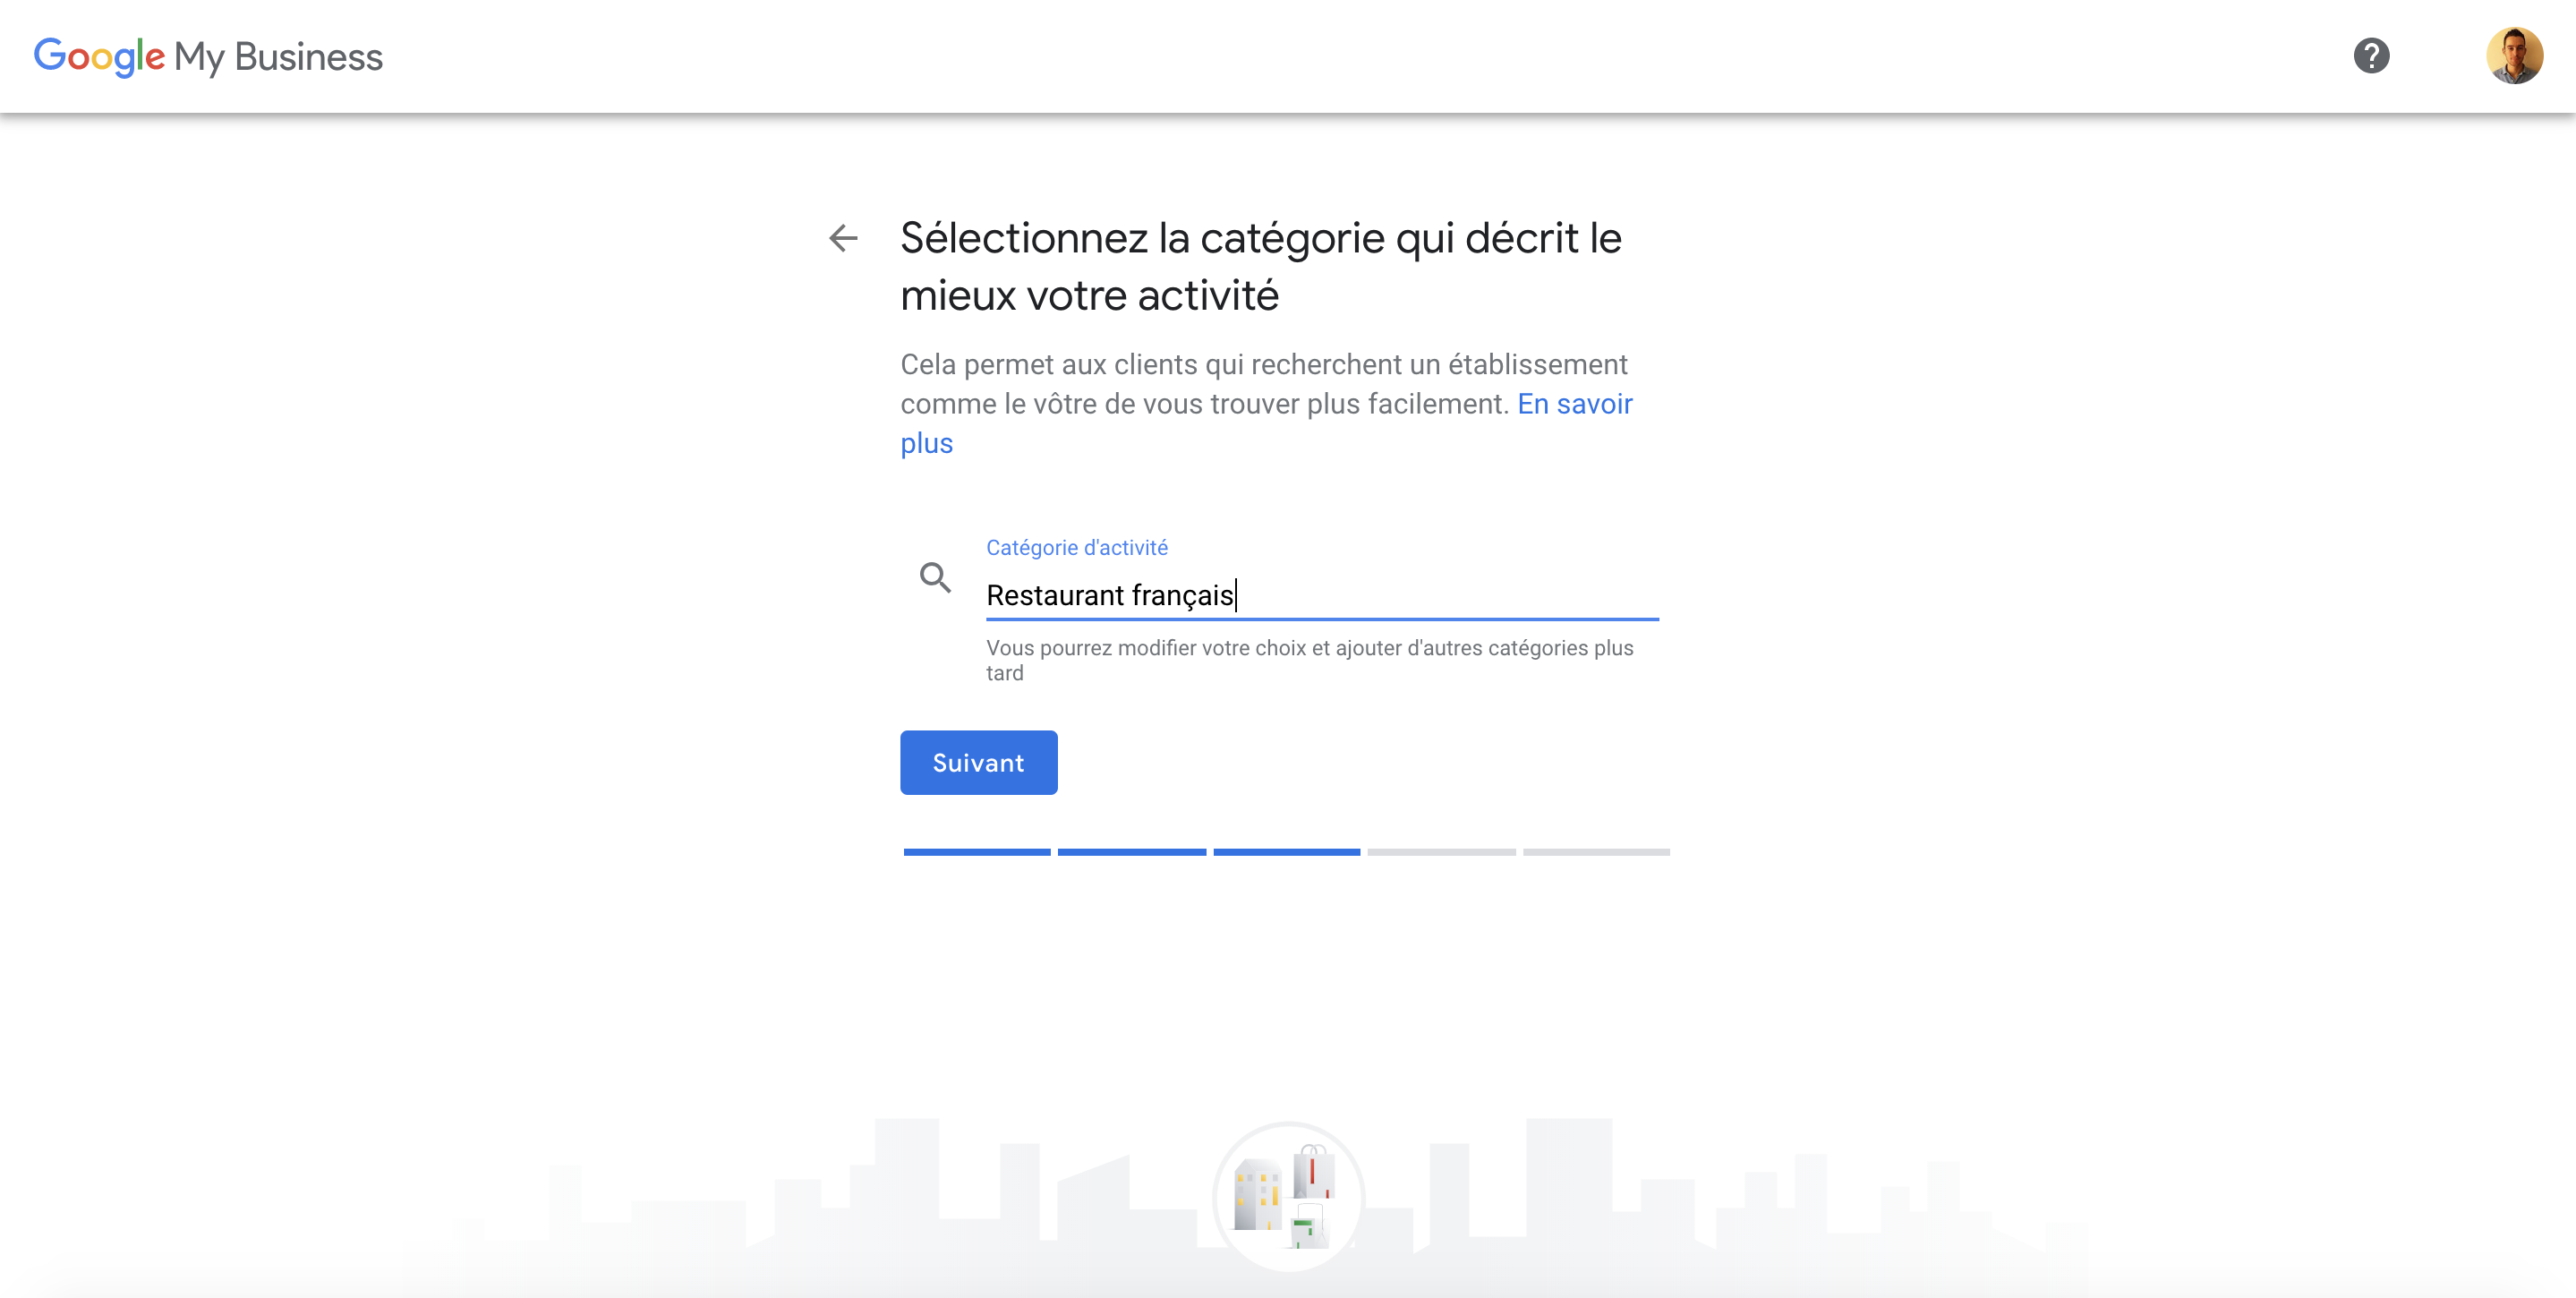 inscription-fiche-google-my-business-categorie-activite